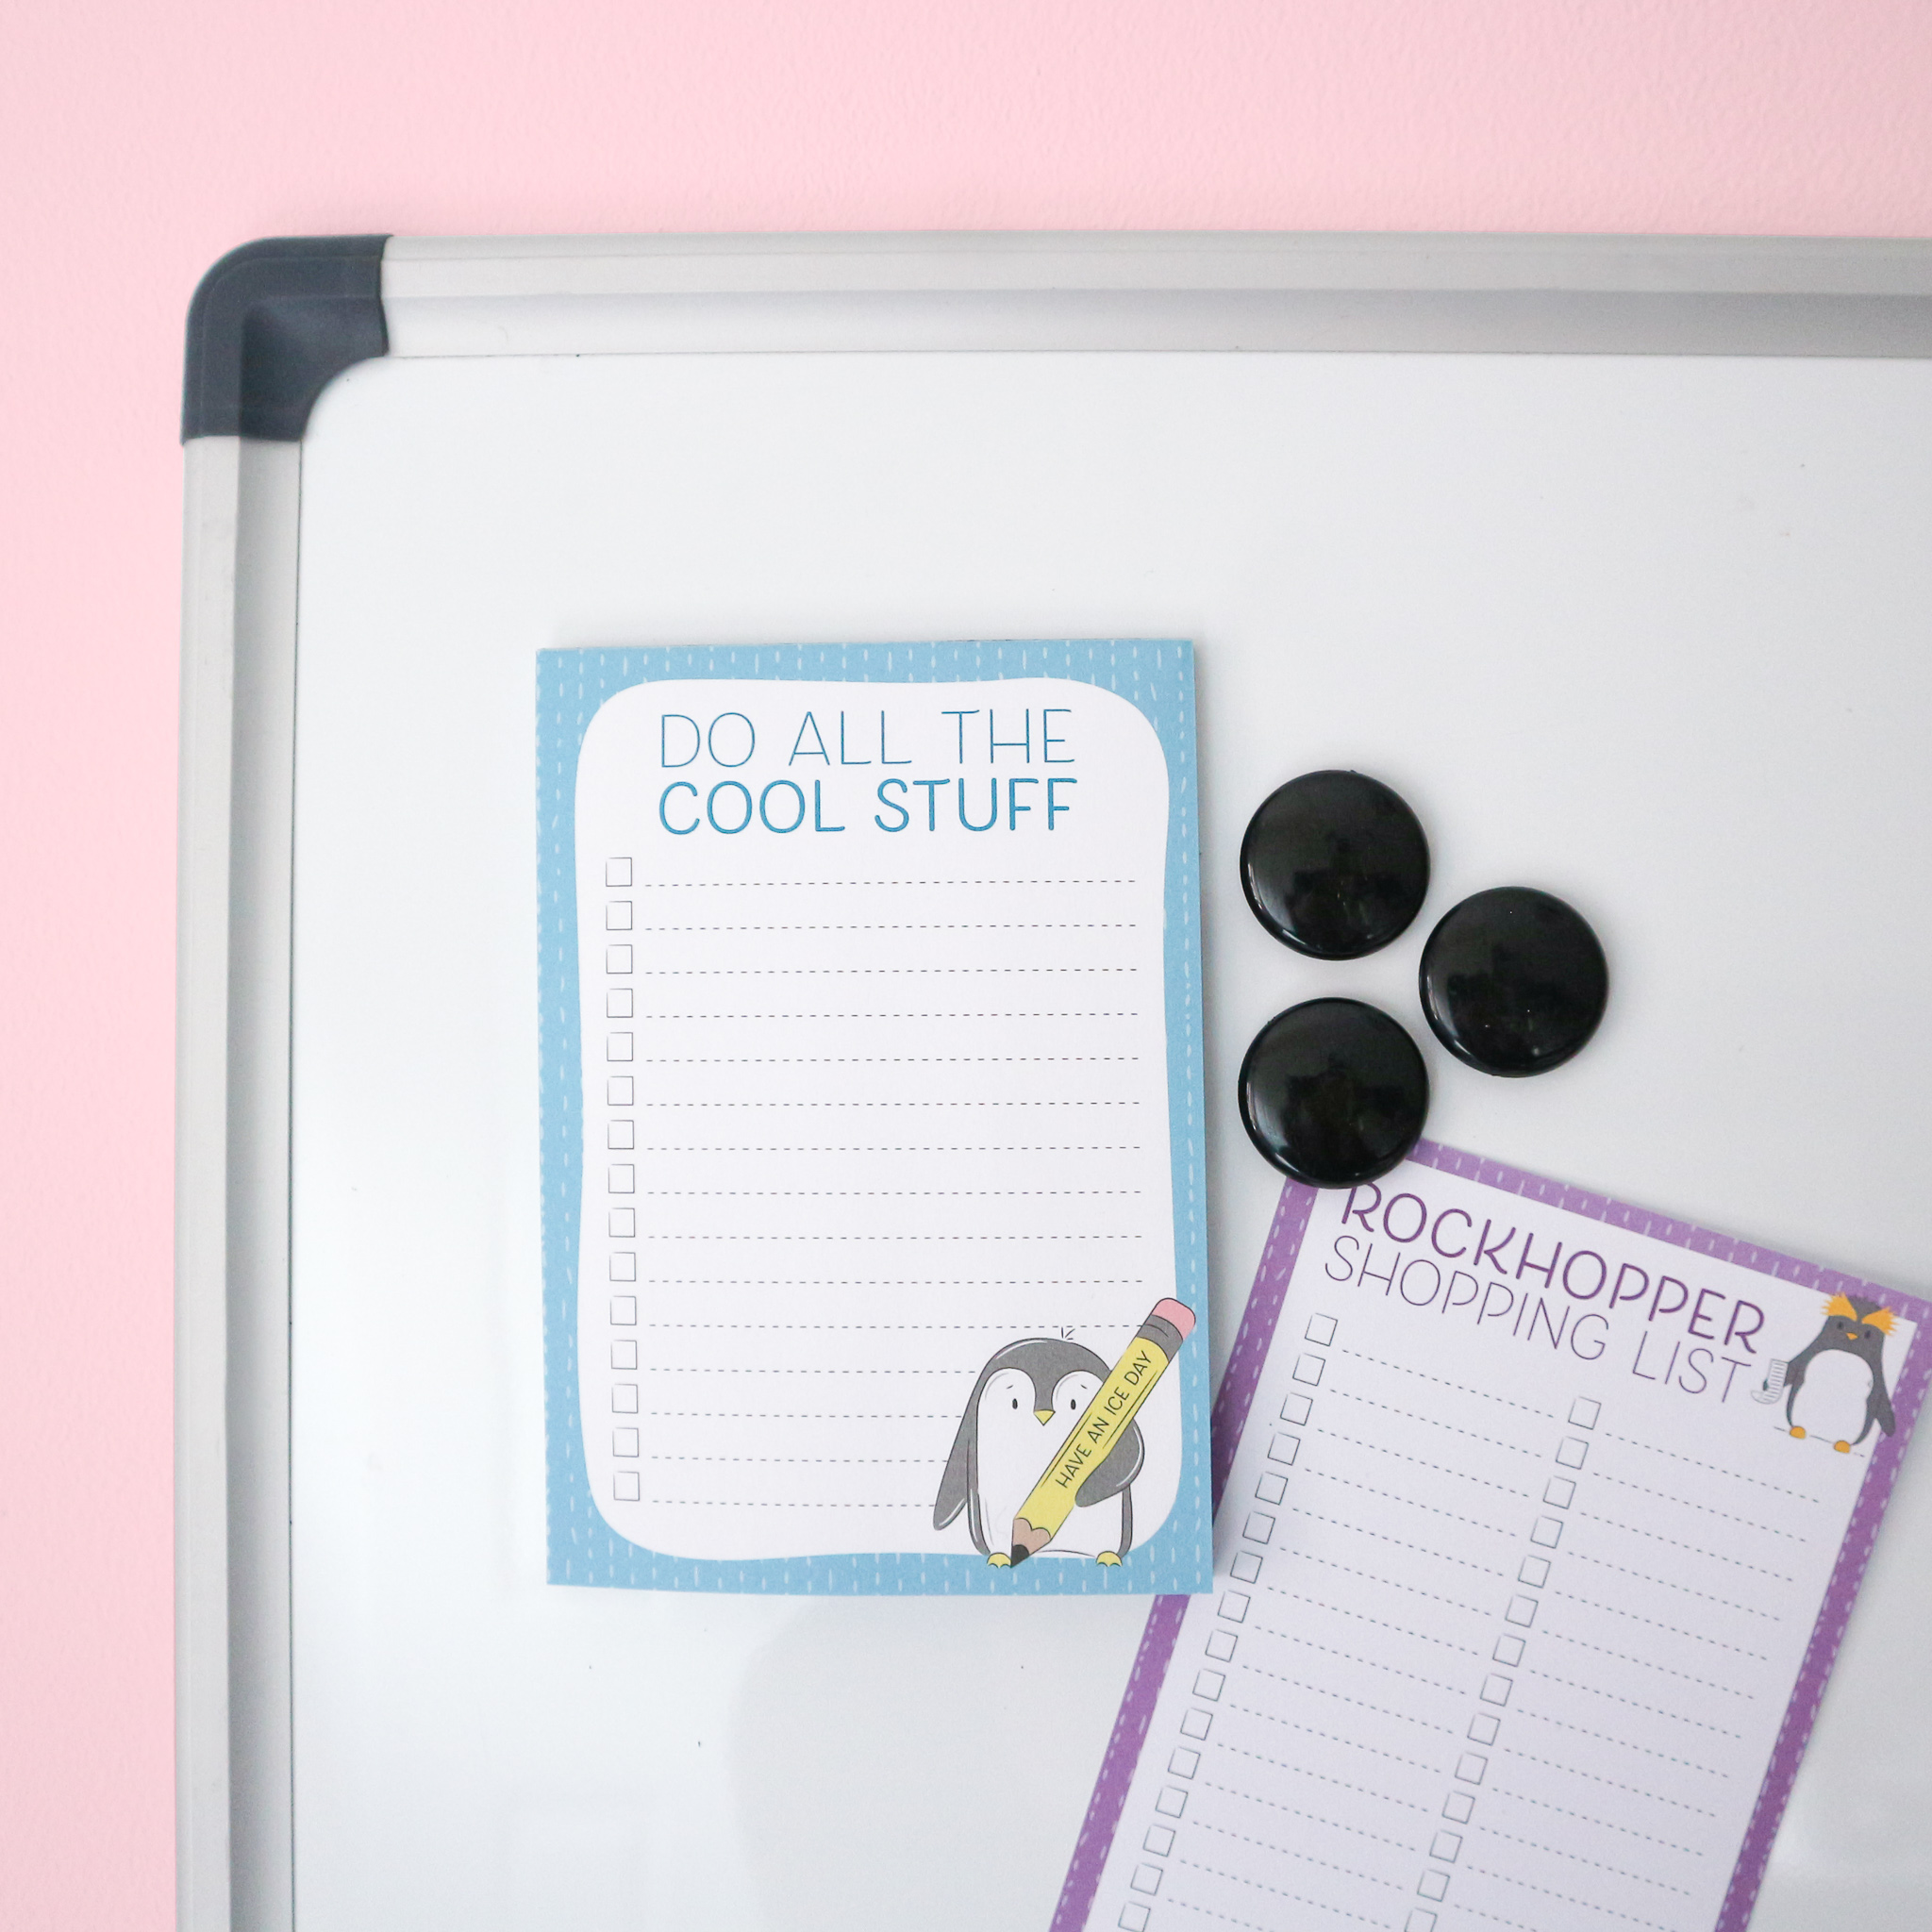 """Do All the Cool Things"" To-Do List Notepad with an illustration of a penguin holding a pencil that reads ""Have an ice day"" This image shows the magnetic option on a magnetic notice board with some magnets and other to-list pages."